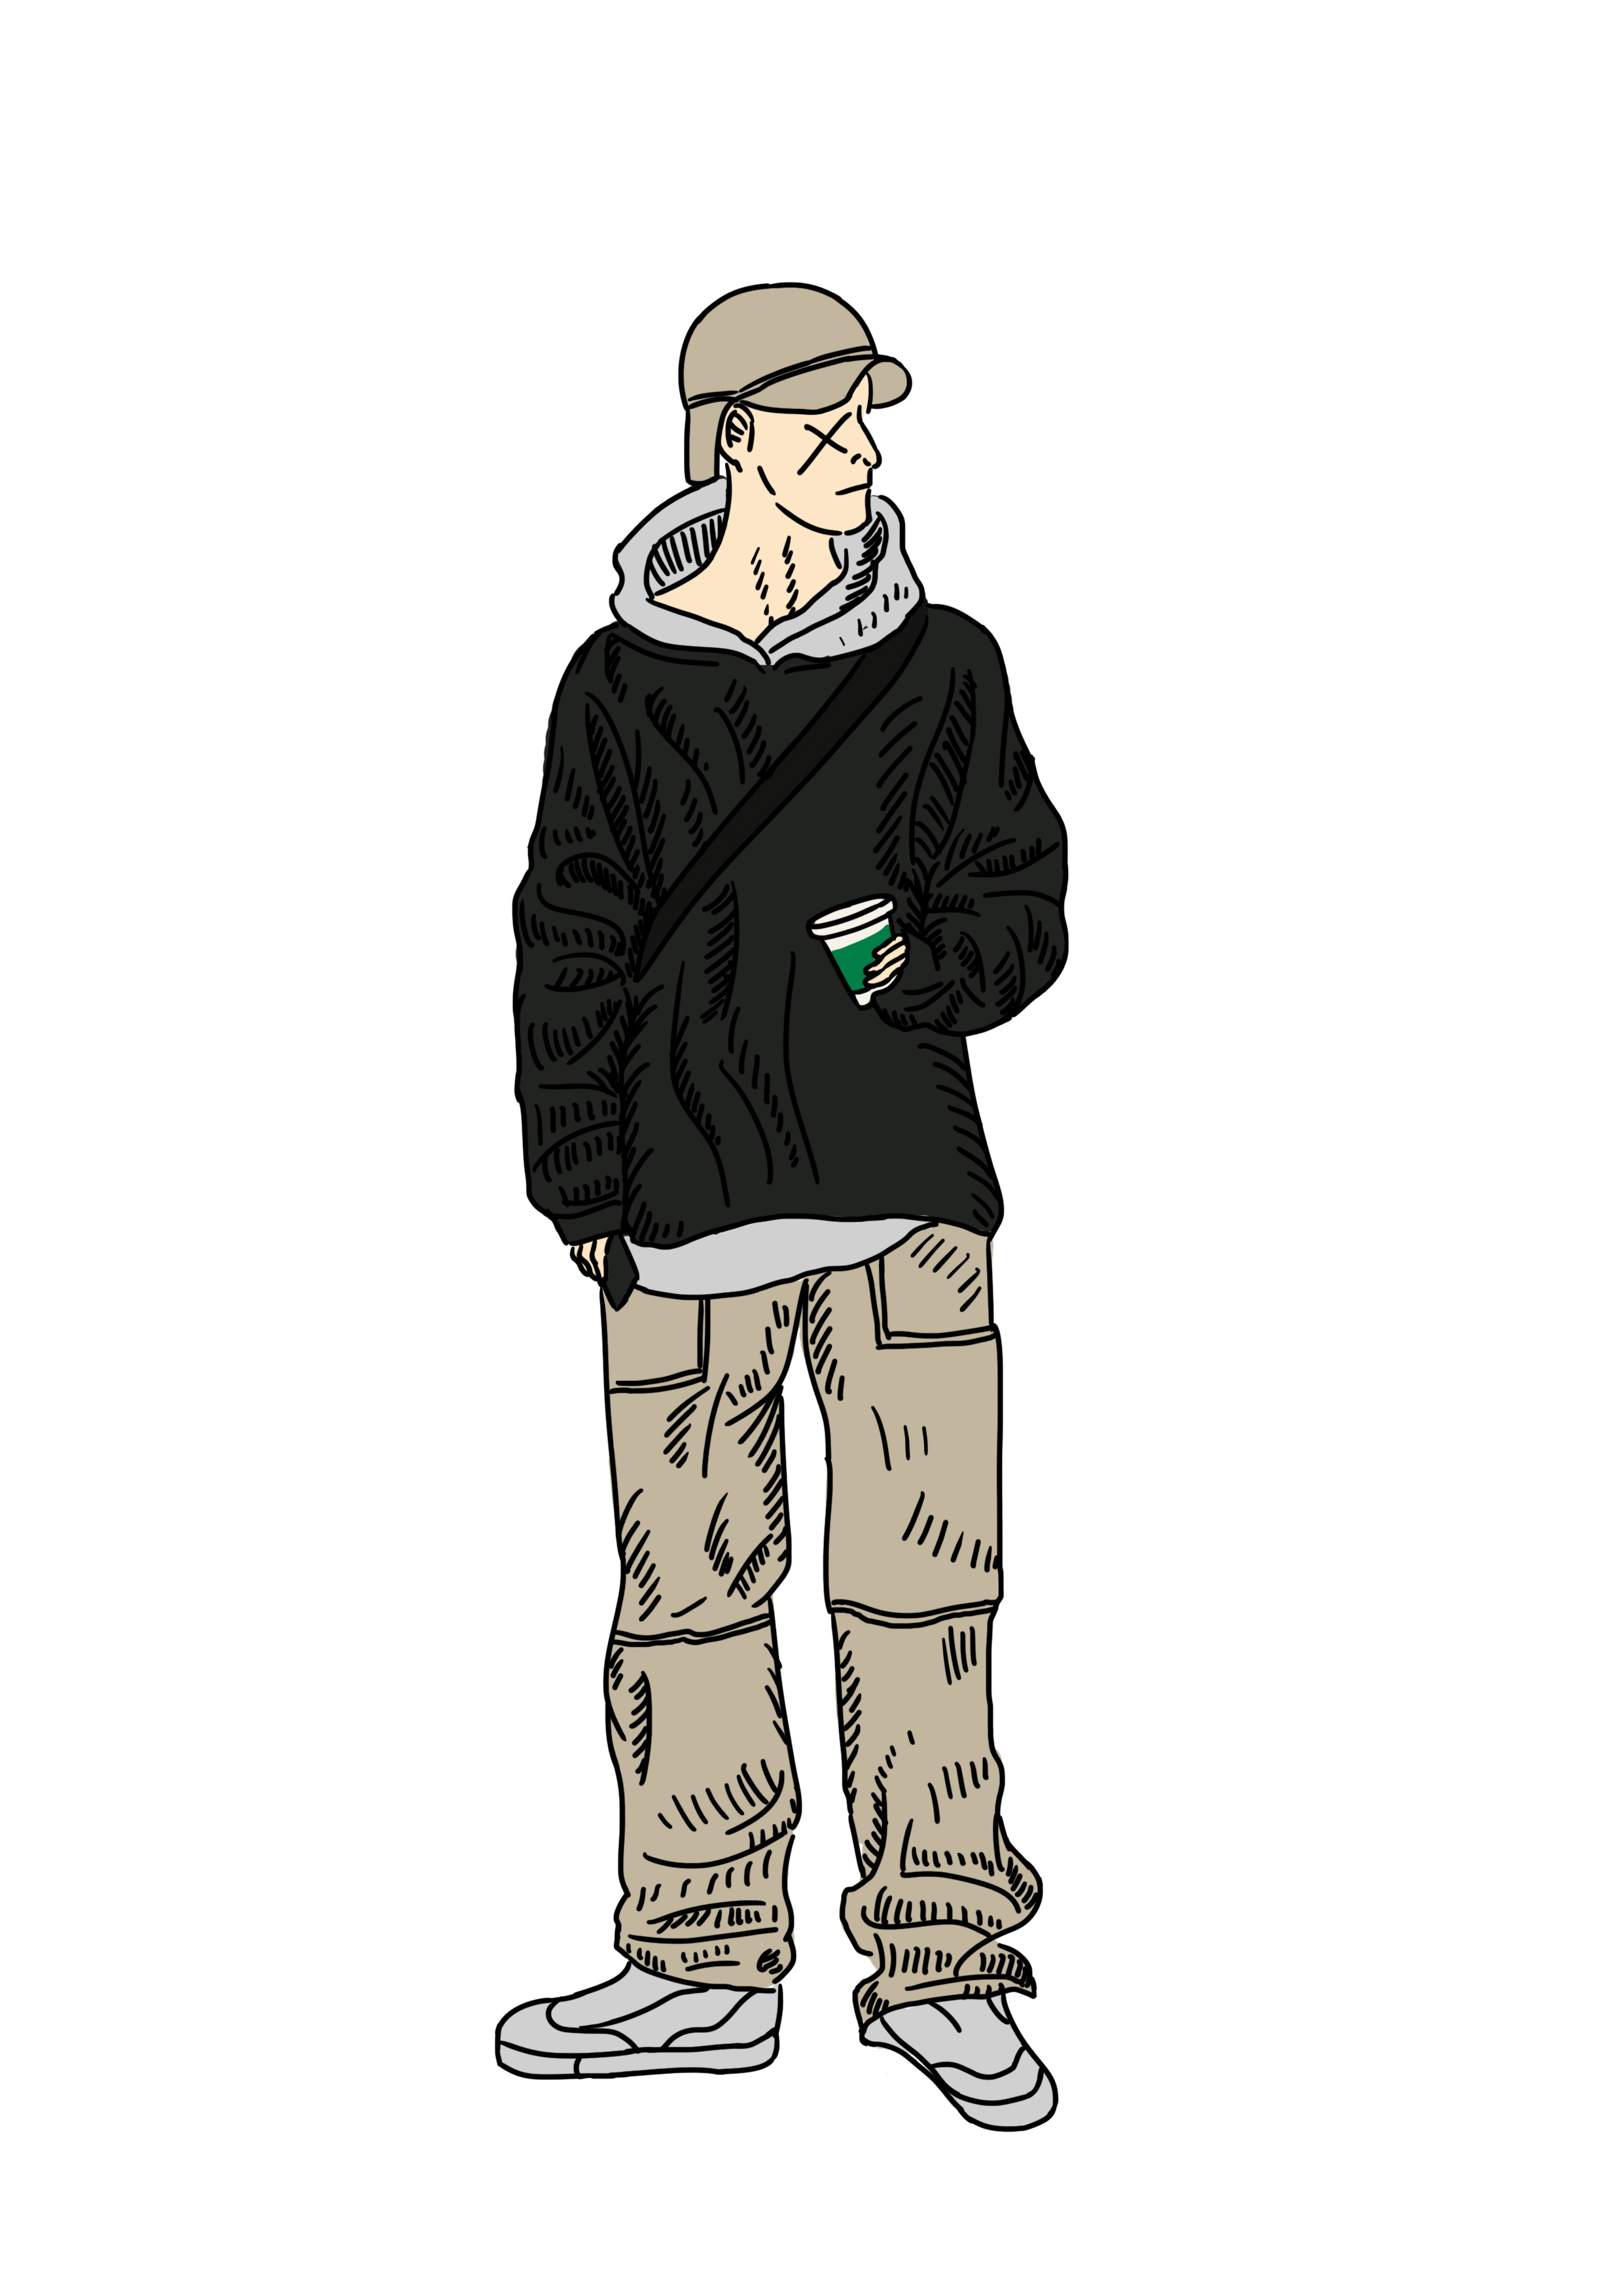 """xgang <strong>streetwear<\/strong>"""" style=""""max-width:440px;float:left;padding:10px 10px 10px 0px;border:0px;""""><a href="""